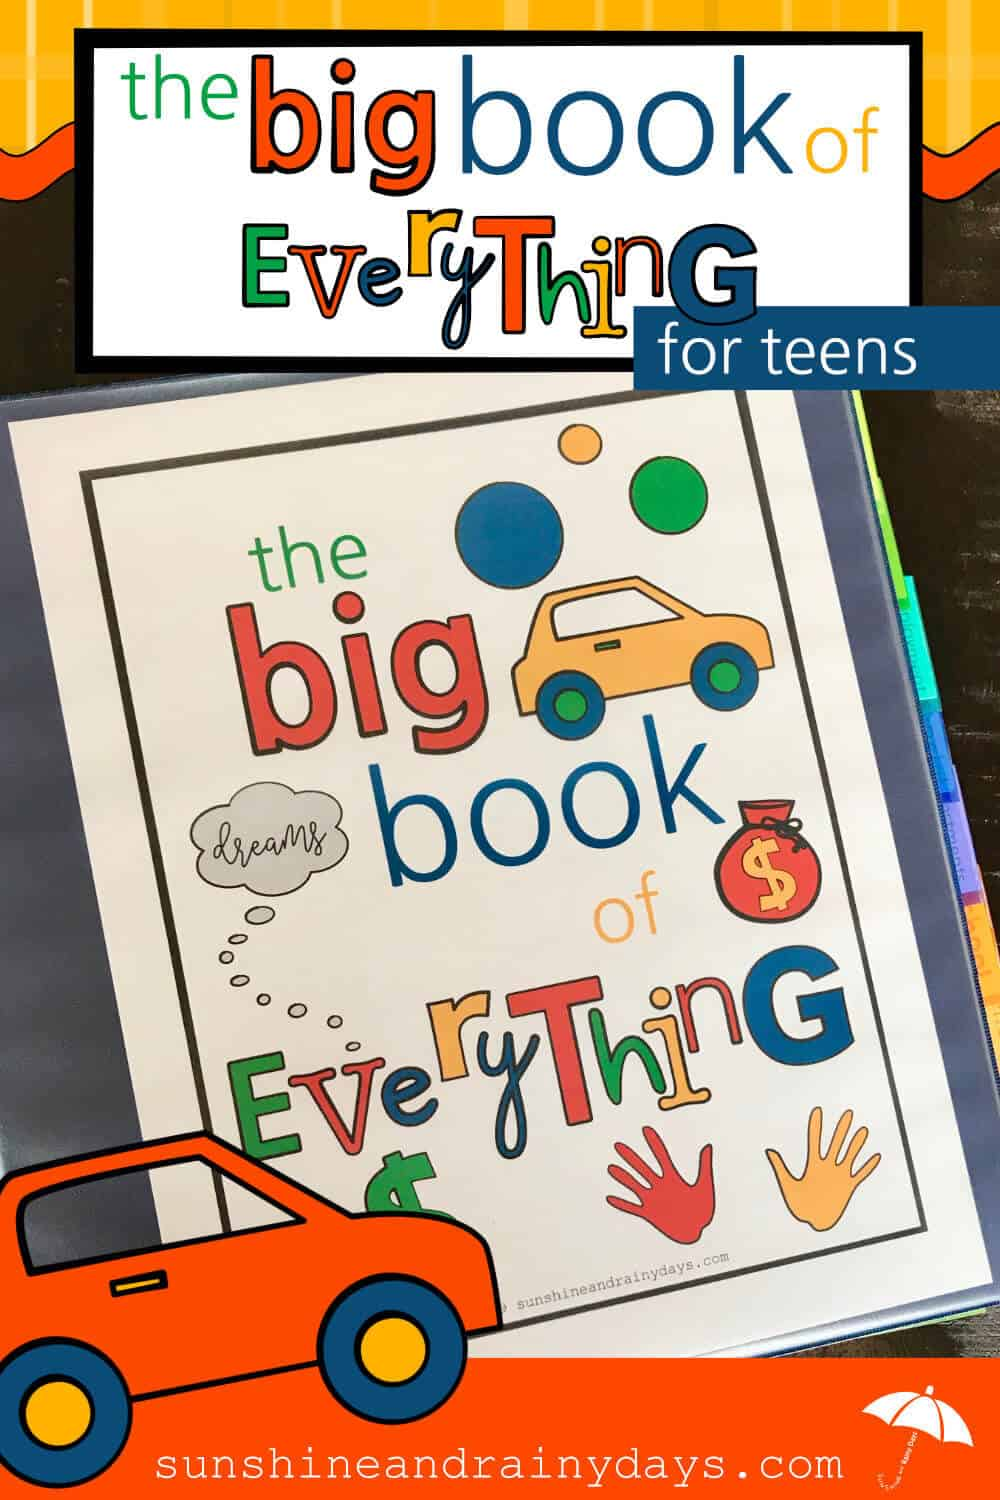 The Big Book Of Everything keeps you organized!